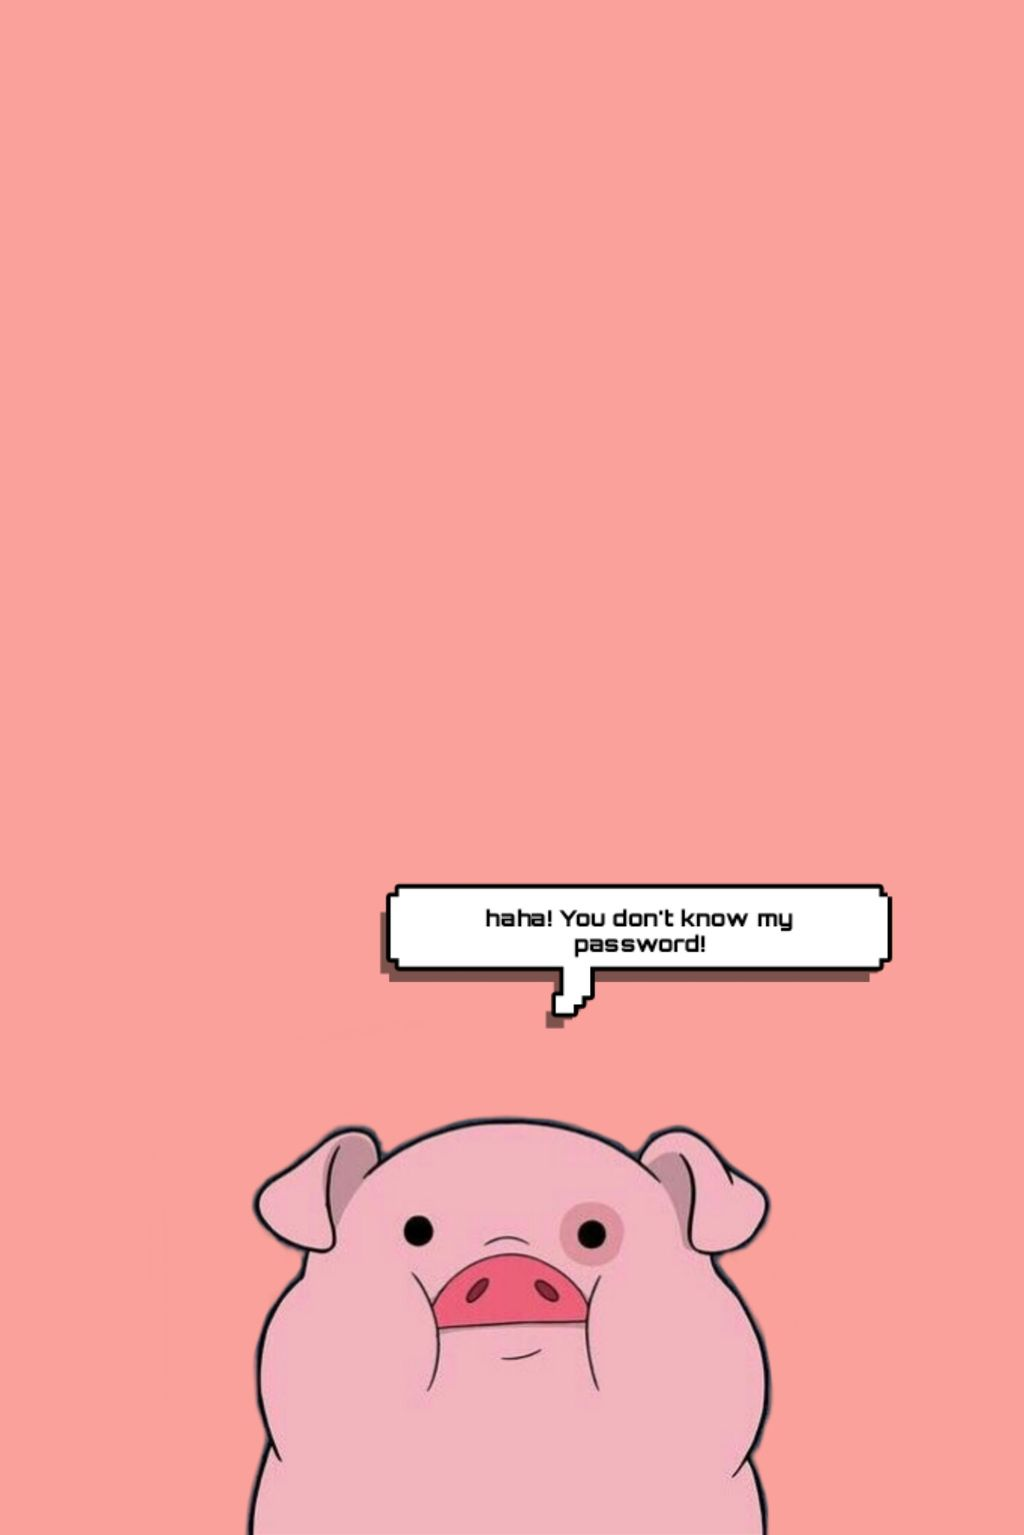 Create Your Own Wallpaper - Haha You Don T Know My Password Pig - HD Wallpaper